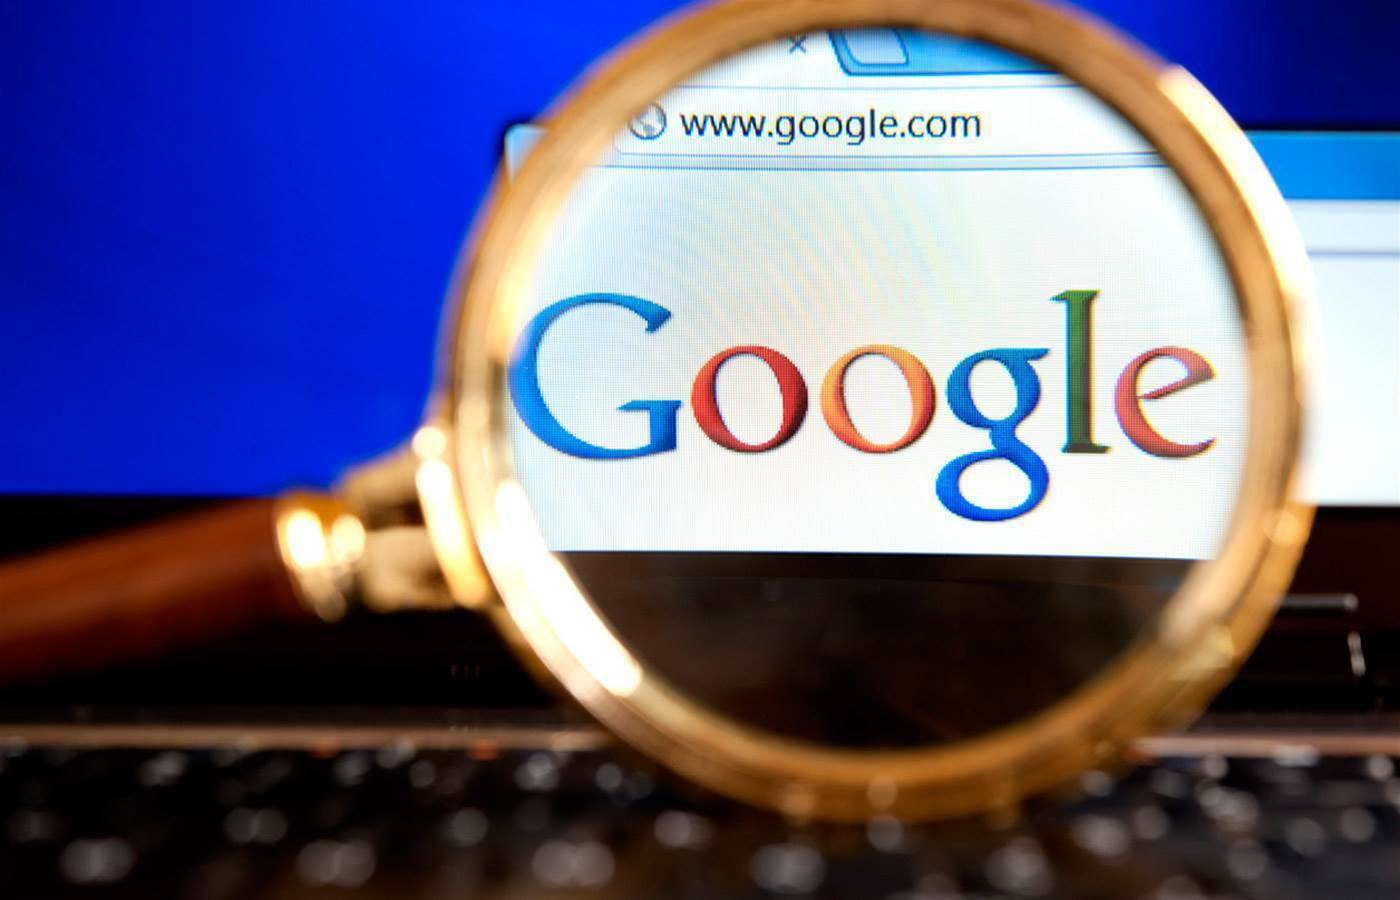 Google u-turns on 'auto sign in' and cookie collection after backlash